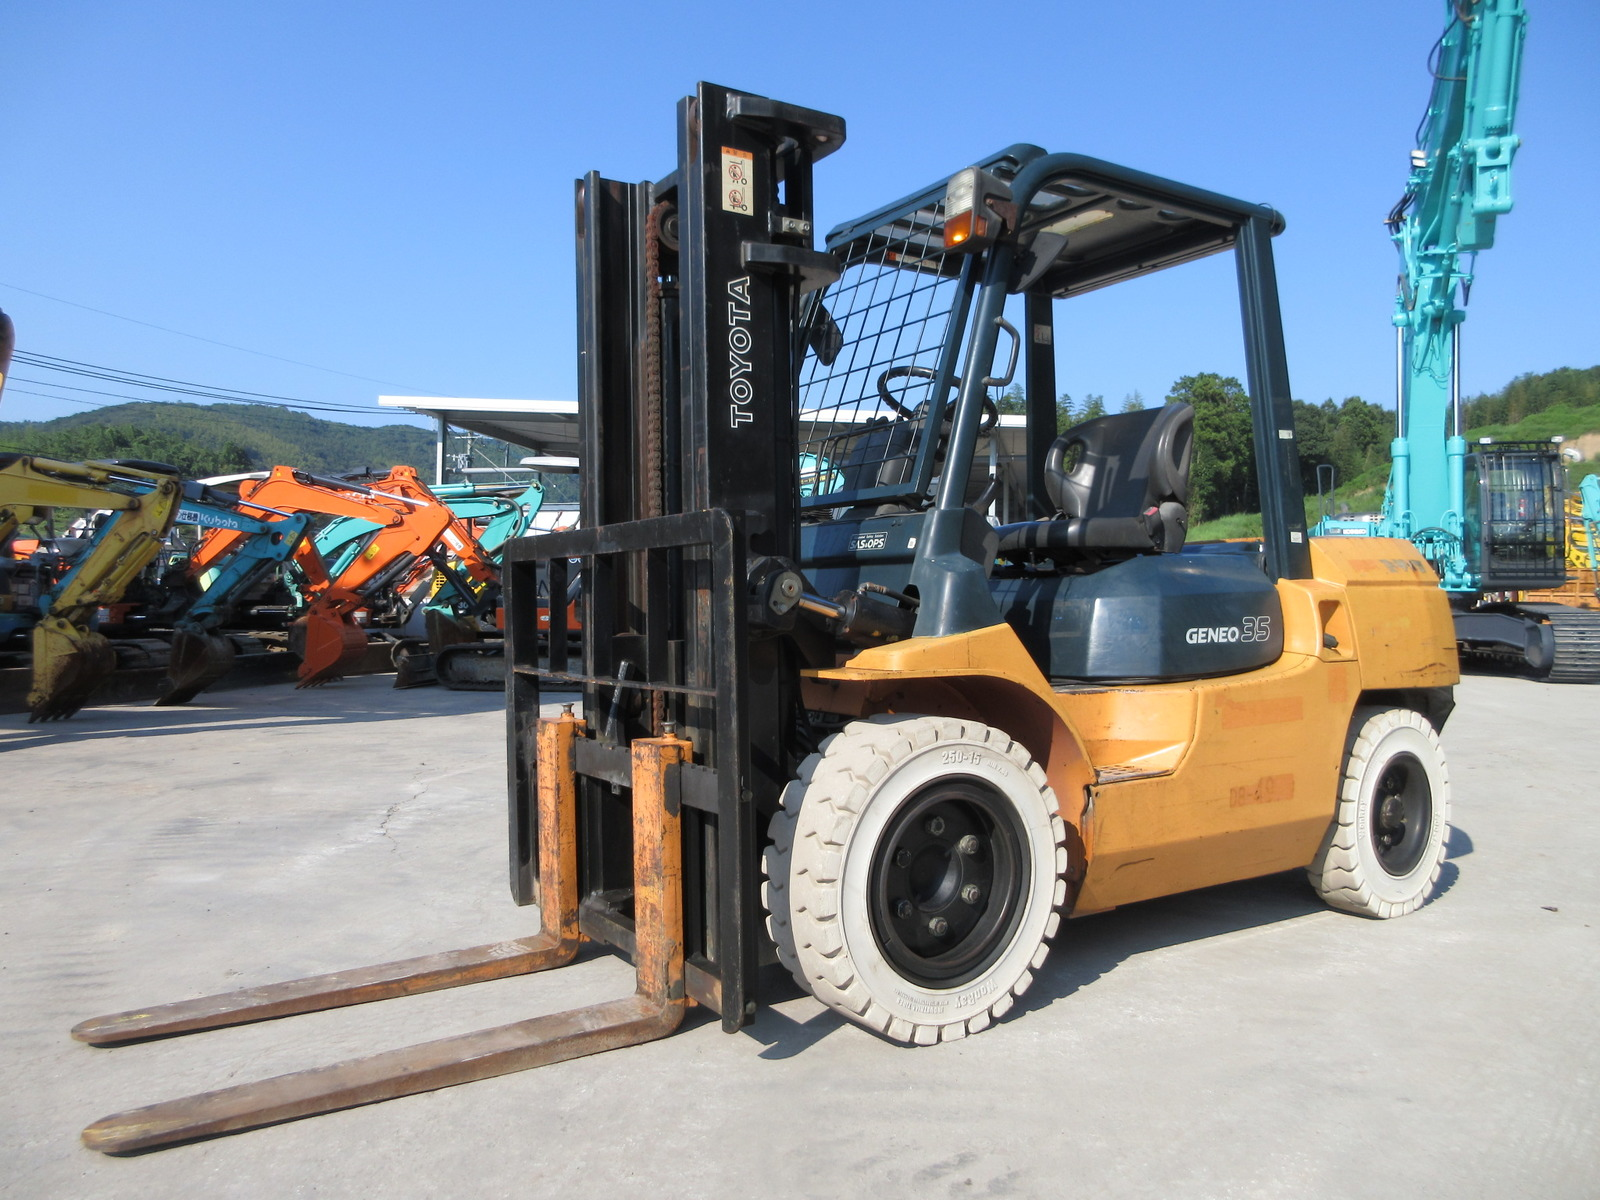 Used Construction Machine used Forklift TOYOTA 02-7FD35 Photos